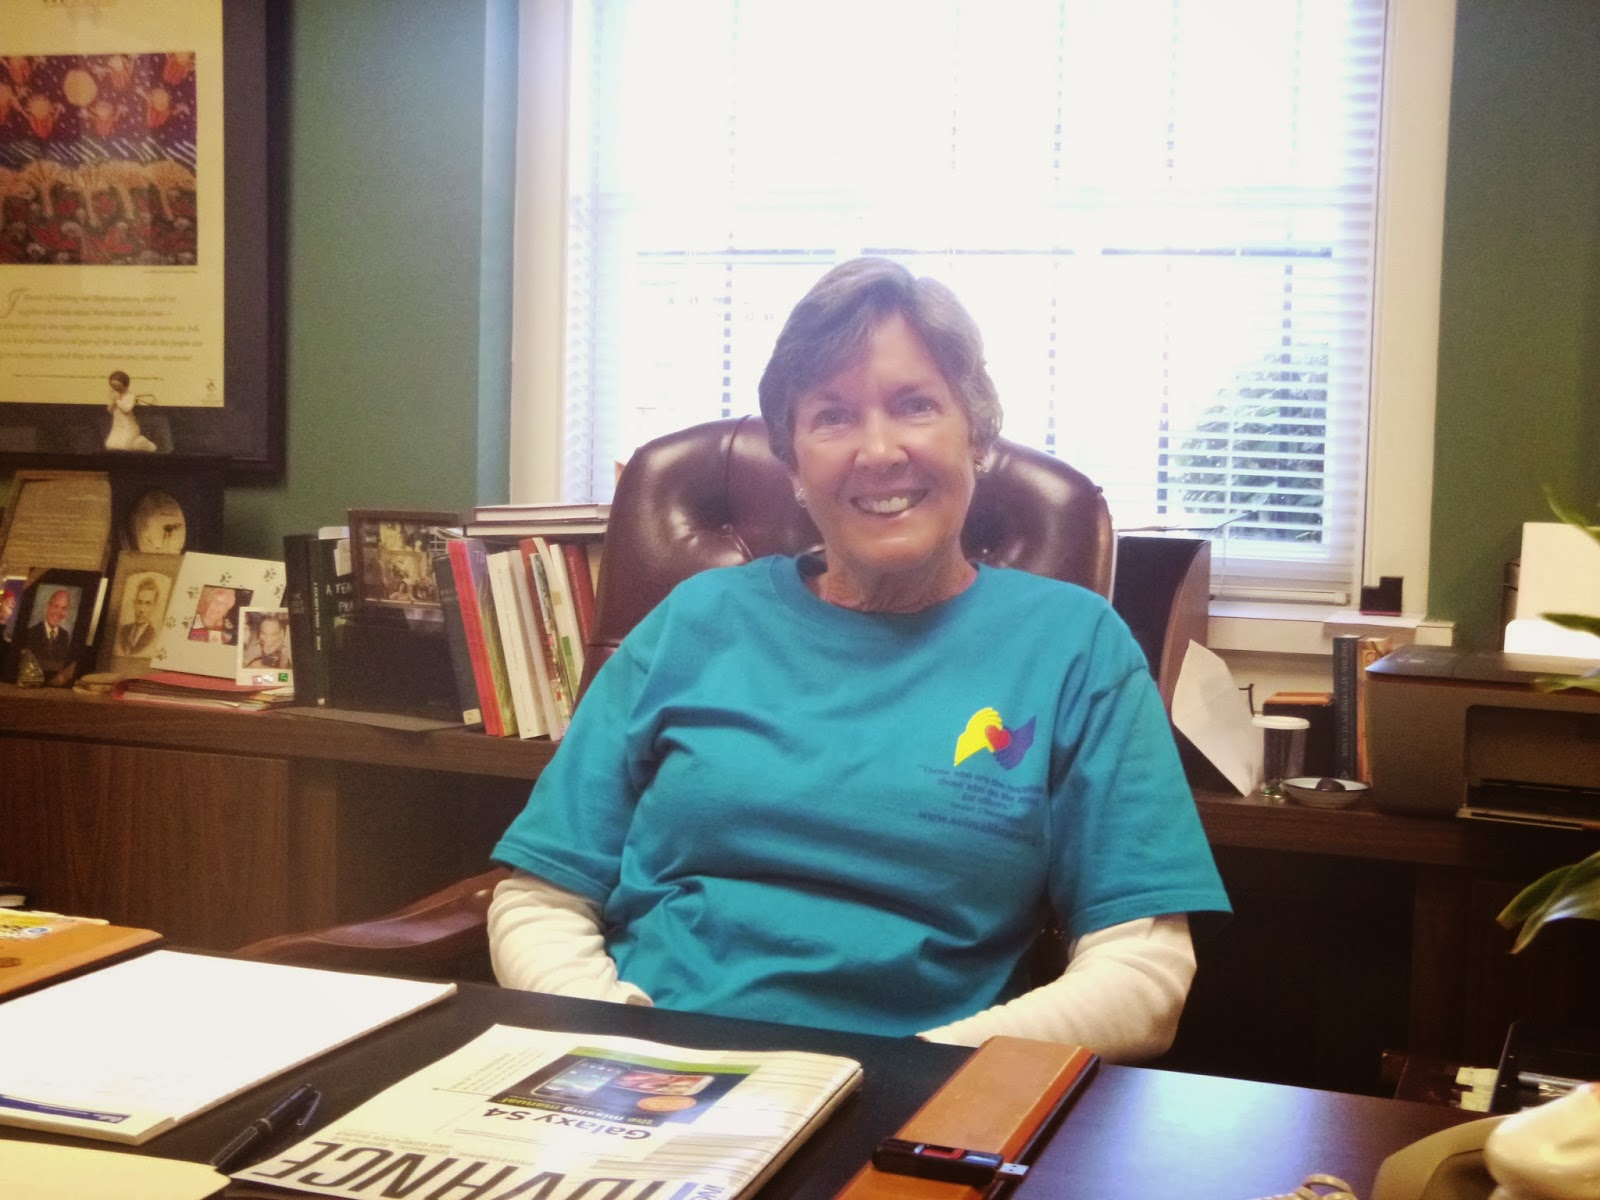 becky nichols pictured left childrens librarian and director of the selma and dallas county public library has worked at the library for more than 36